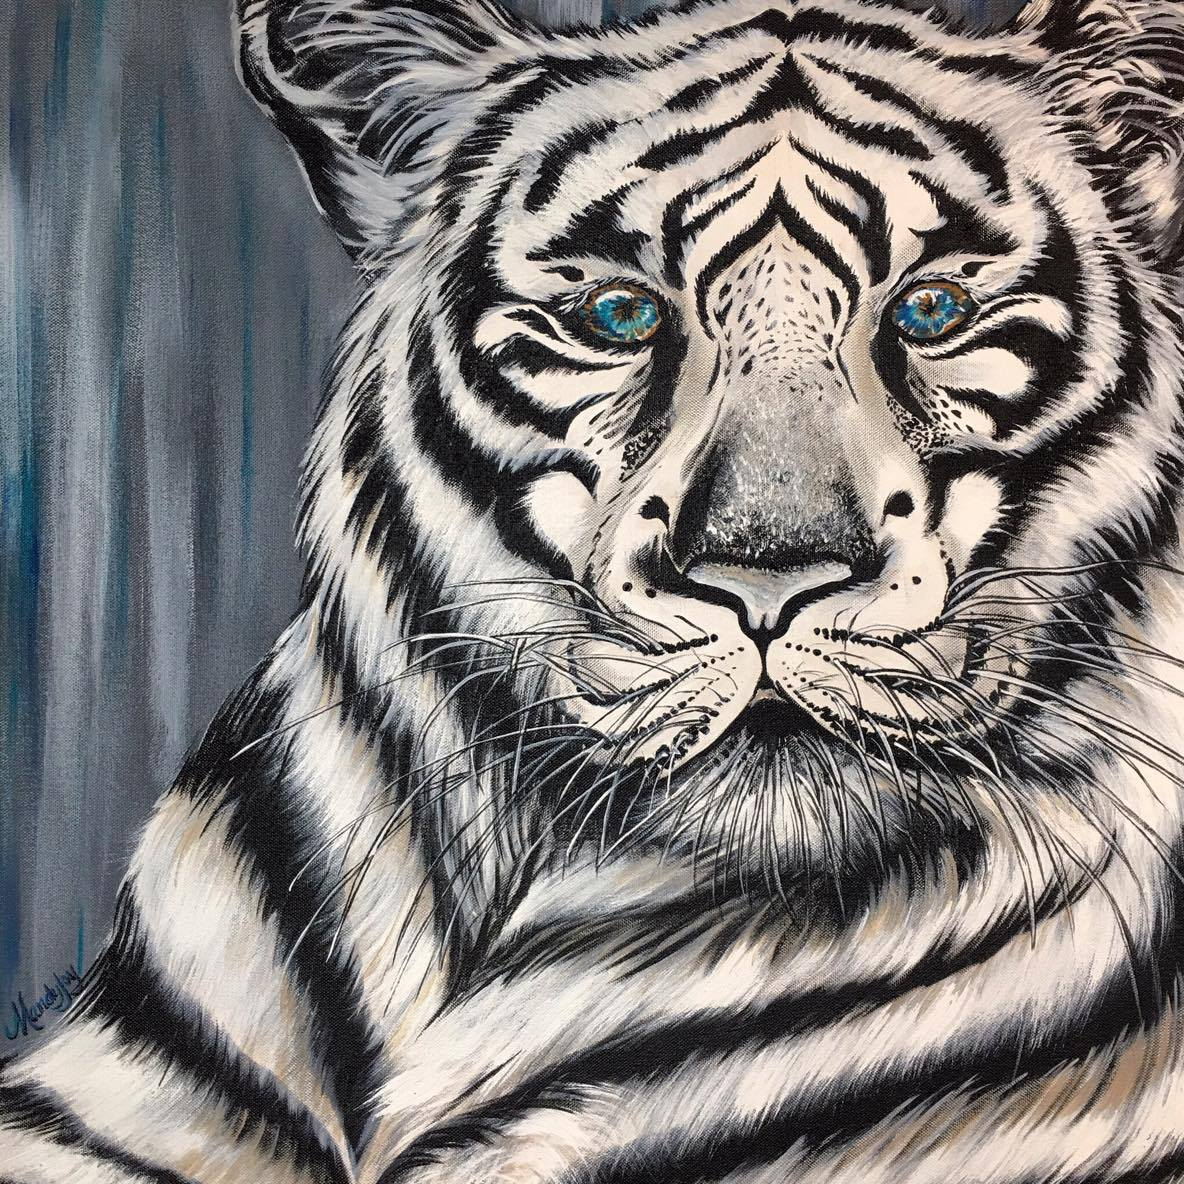 Tiger painting - Blue Eyed Beast - wall art - Mandy Joy